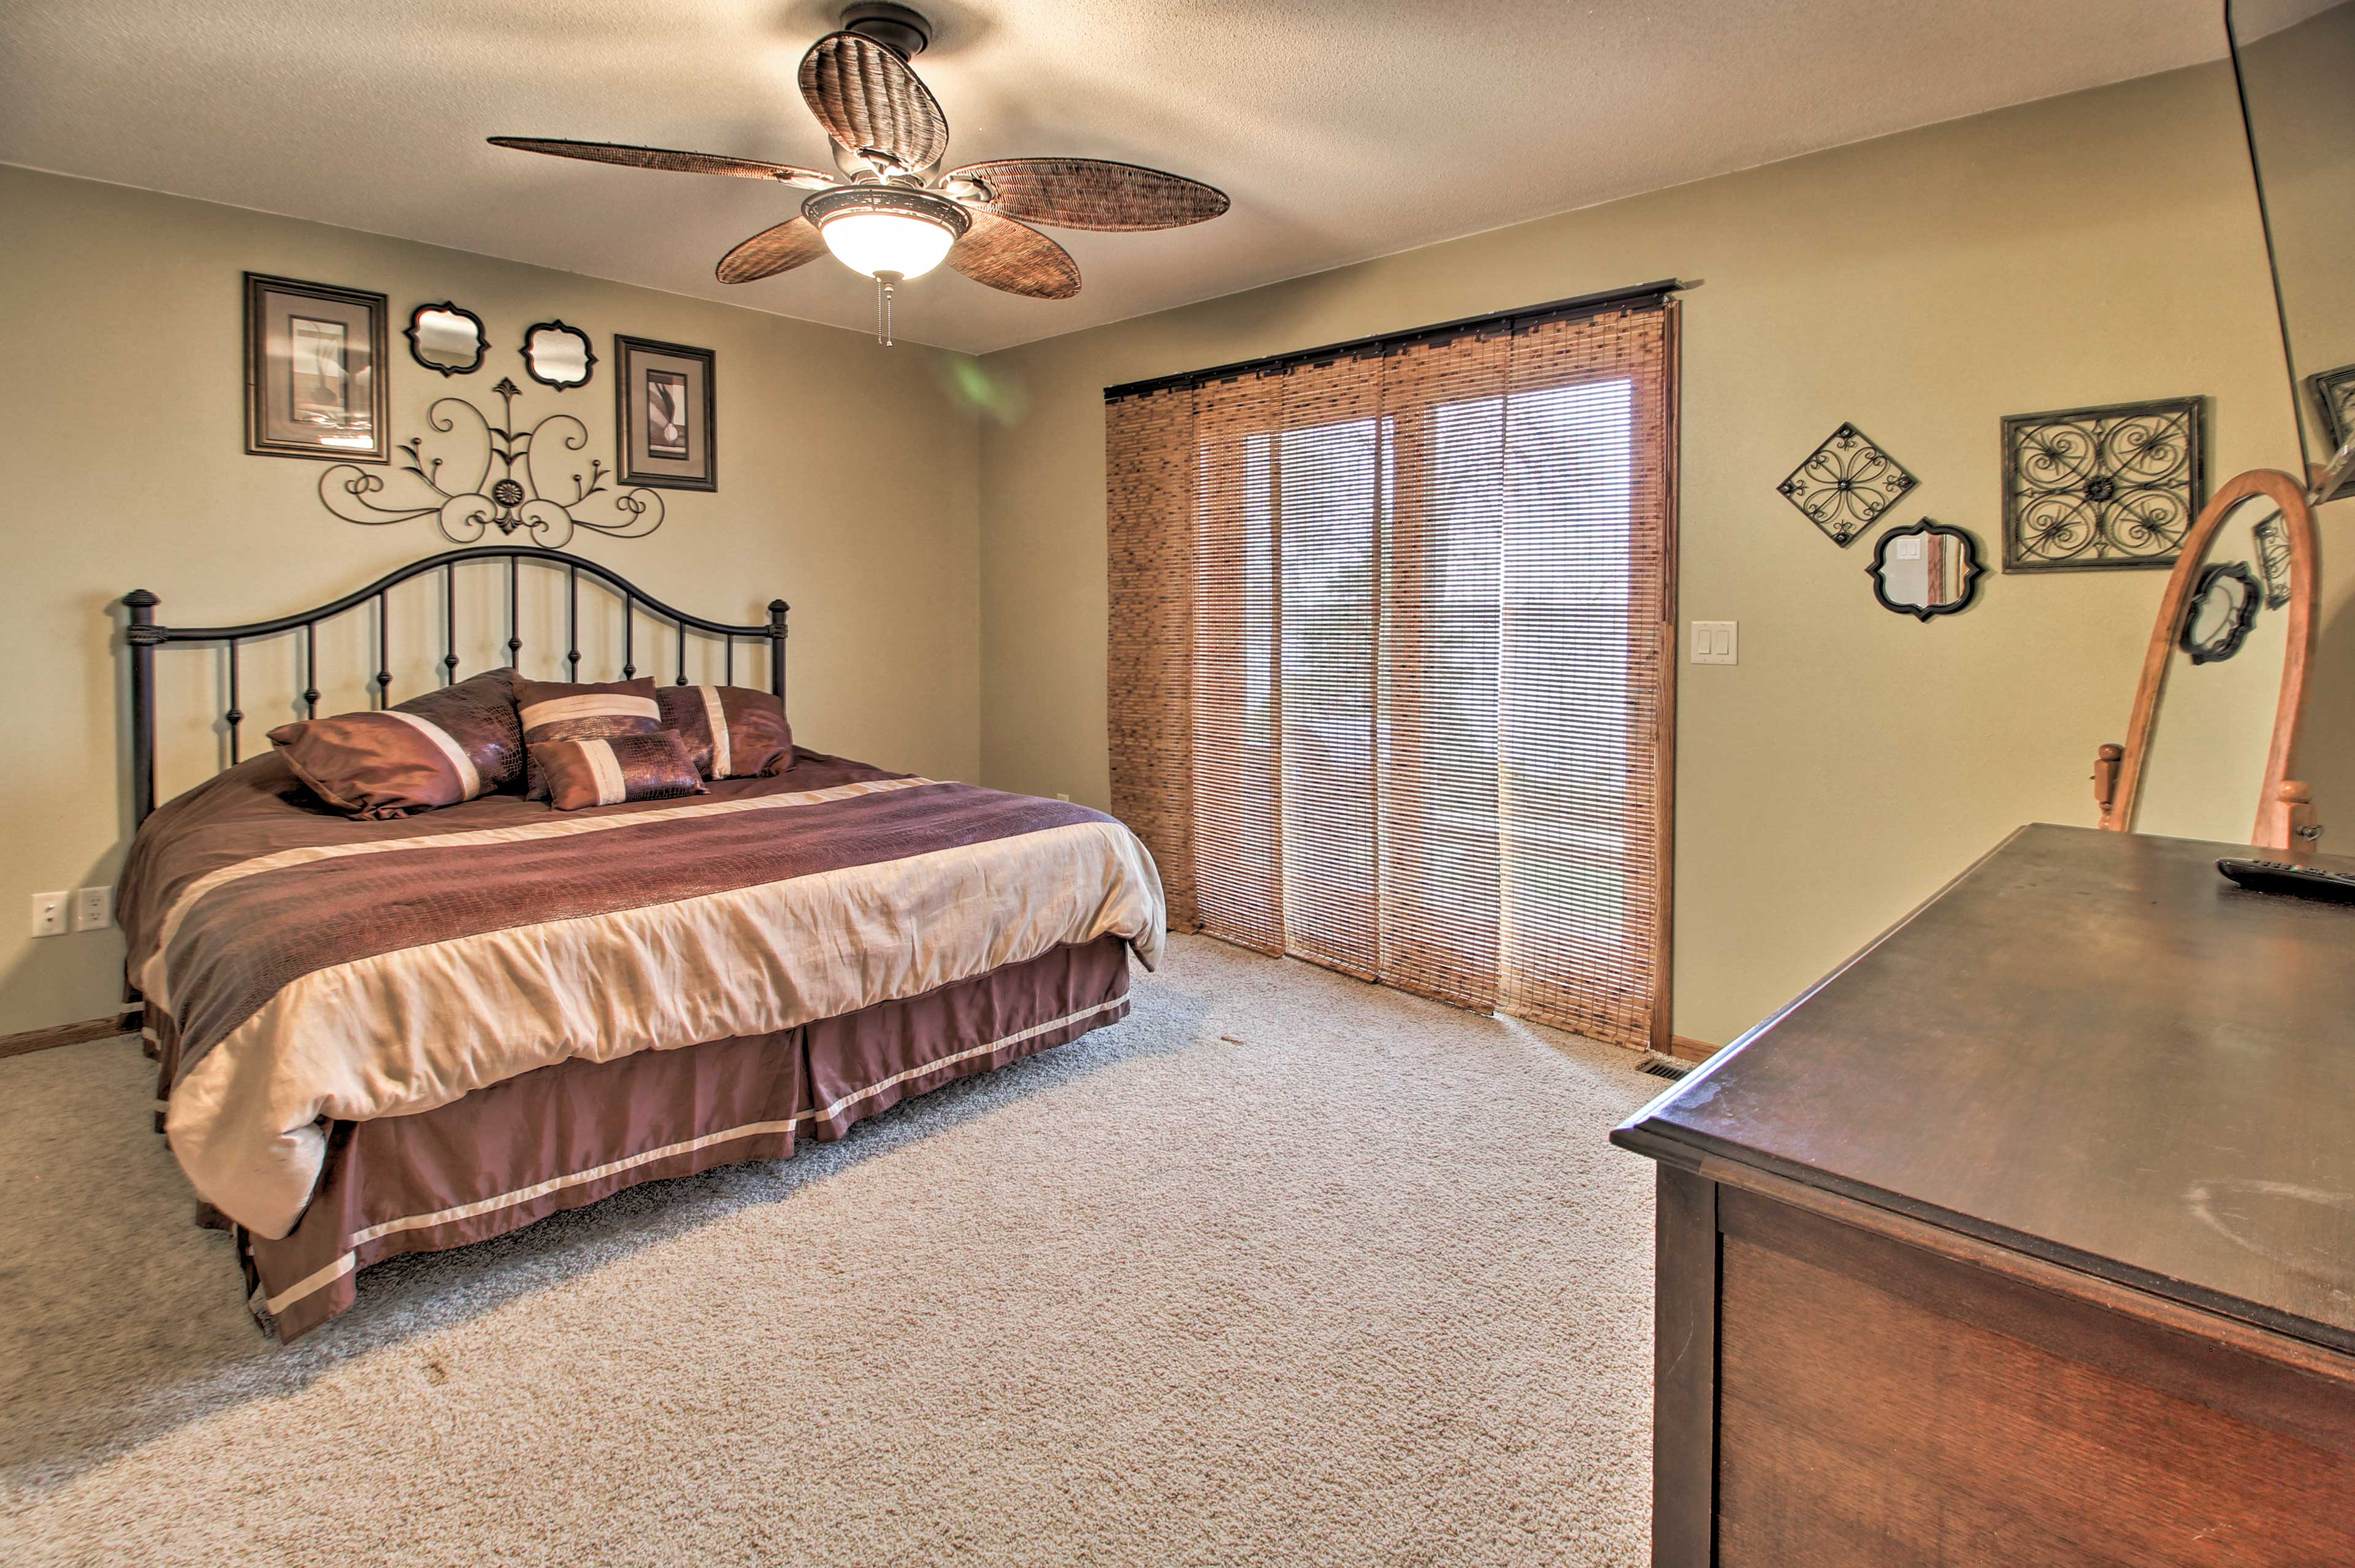 The master bedroom hosts a king bed and deck access.